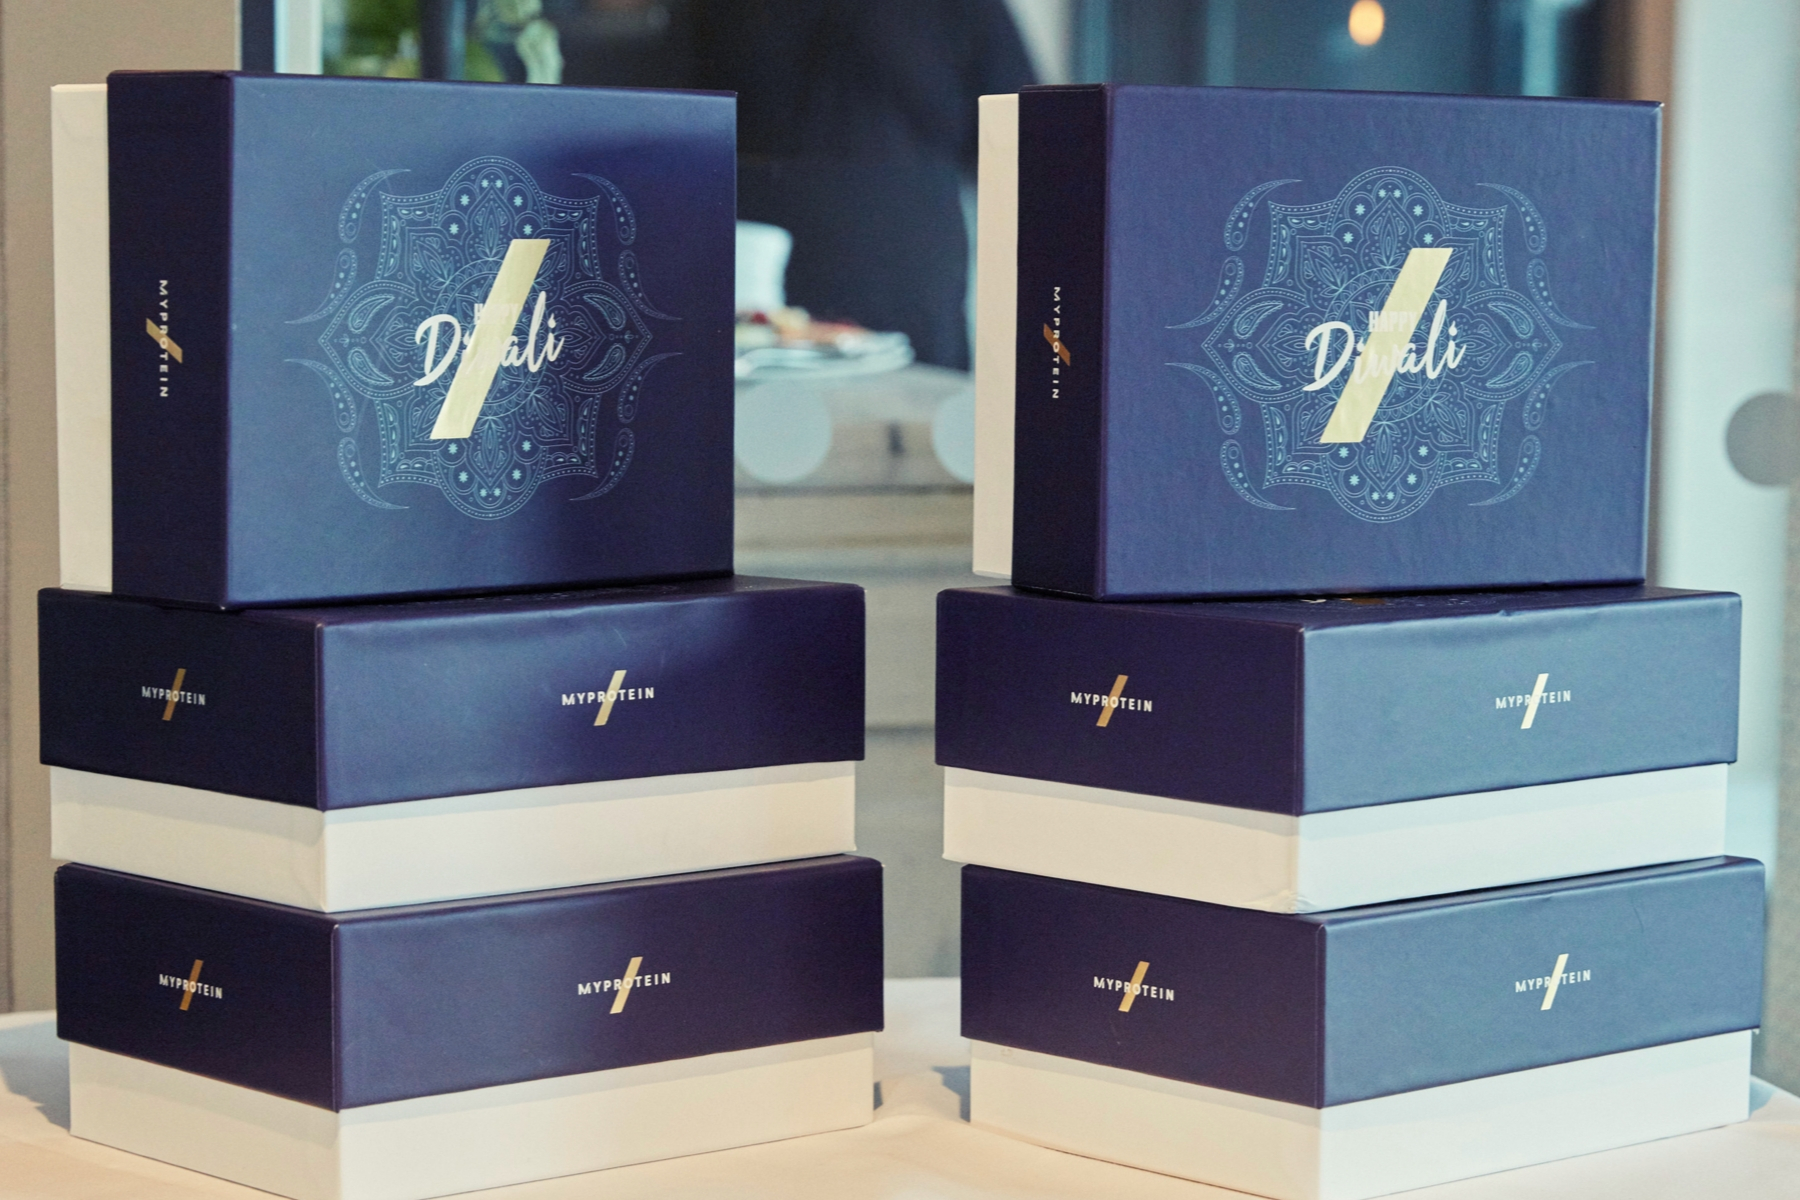 Myprotein launches Diwali-special gift box